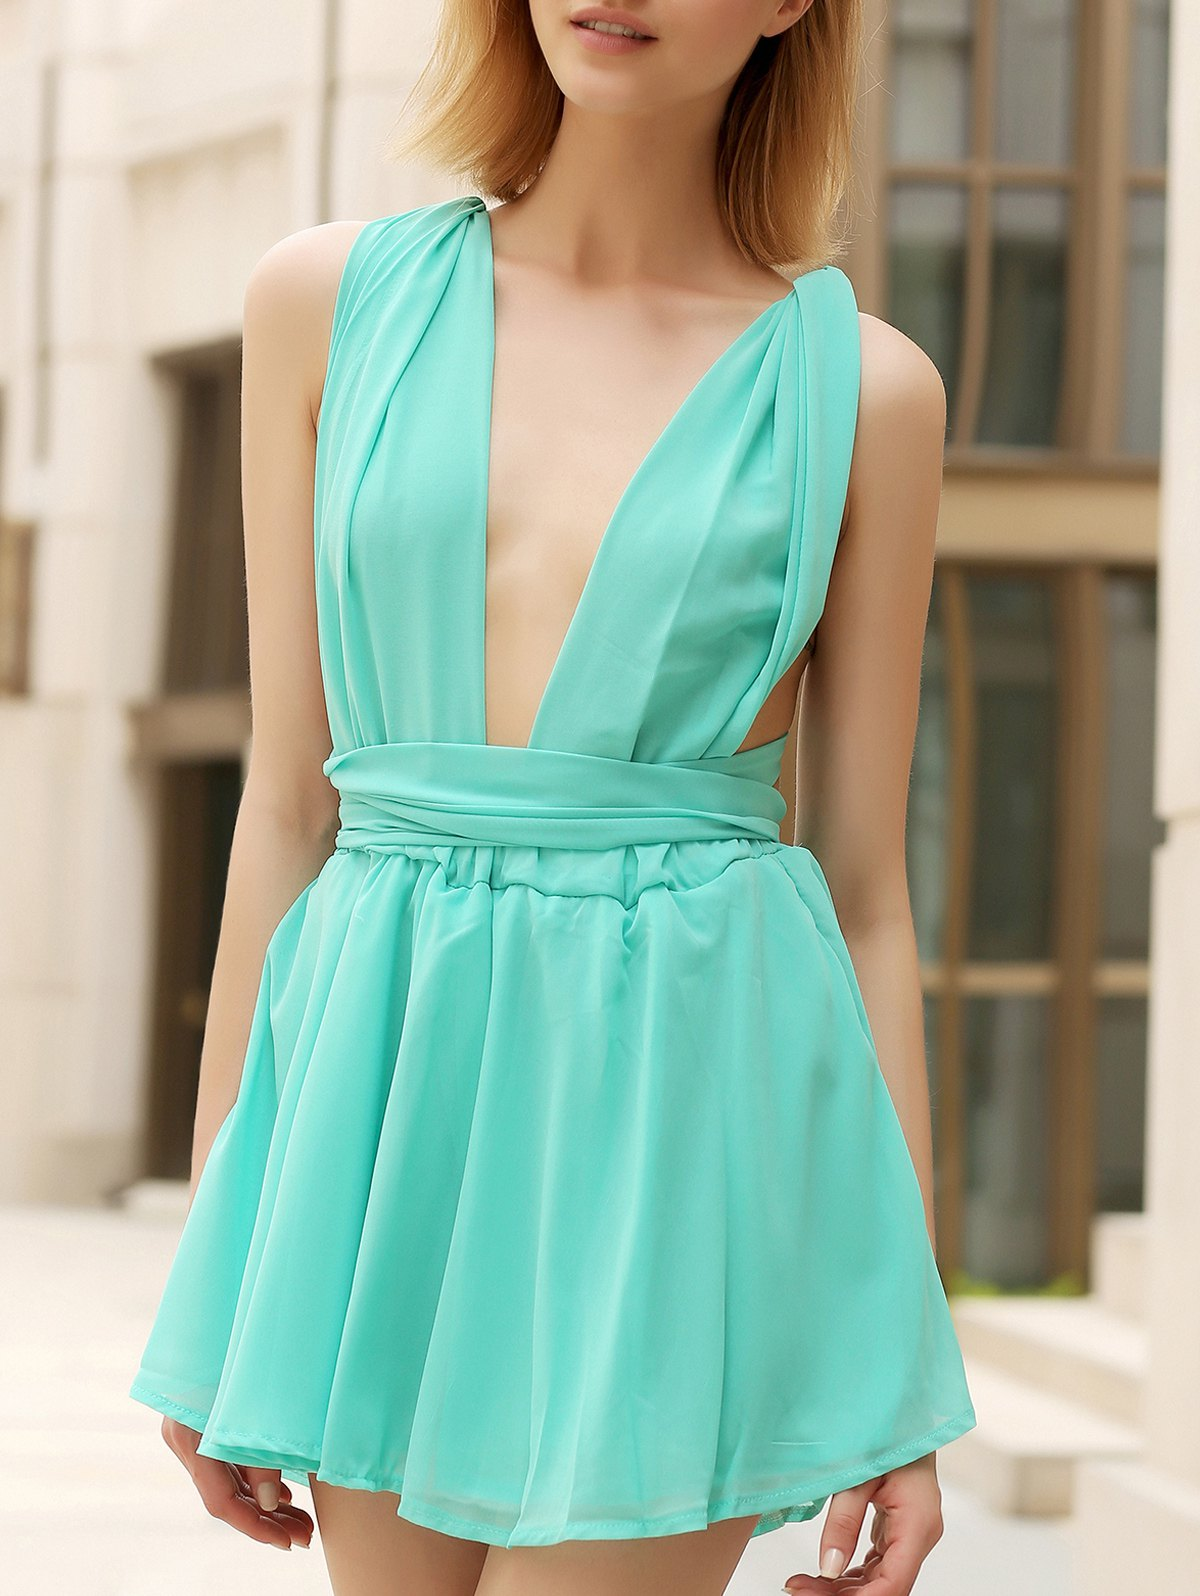 Chic Women's Plunging Neck Criss Cross Solid Color Bowknot Sleeveless Romper - LIGHT GREEN XL